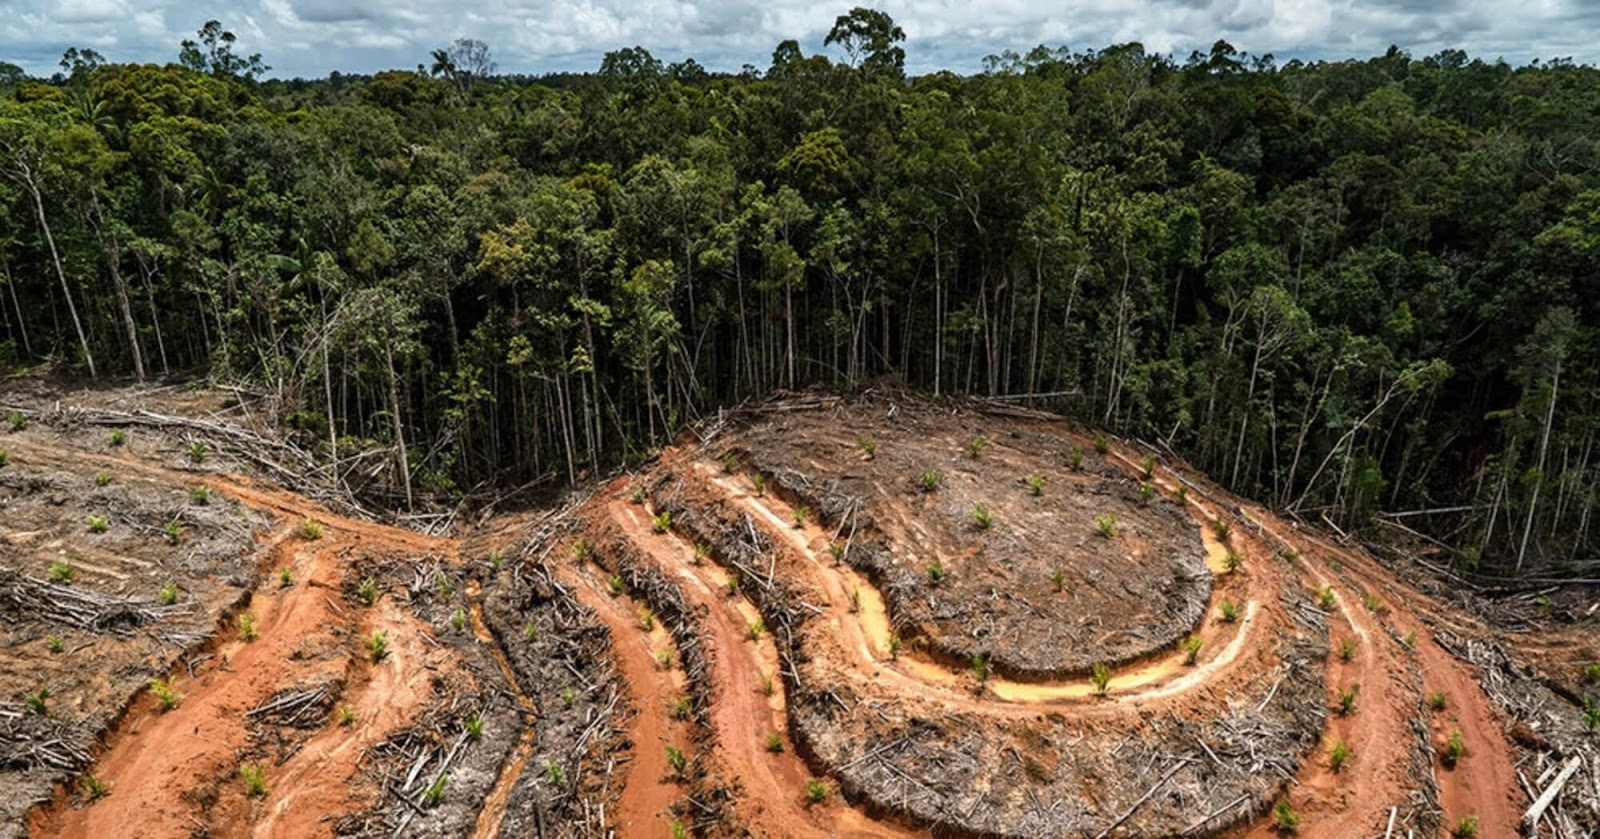 Revealing Video By Greenpeace International Raises Awareness Of Massive Deforestation In Indonesia